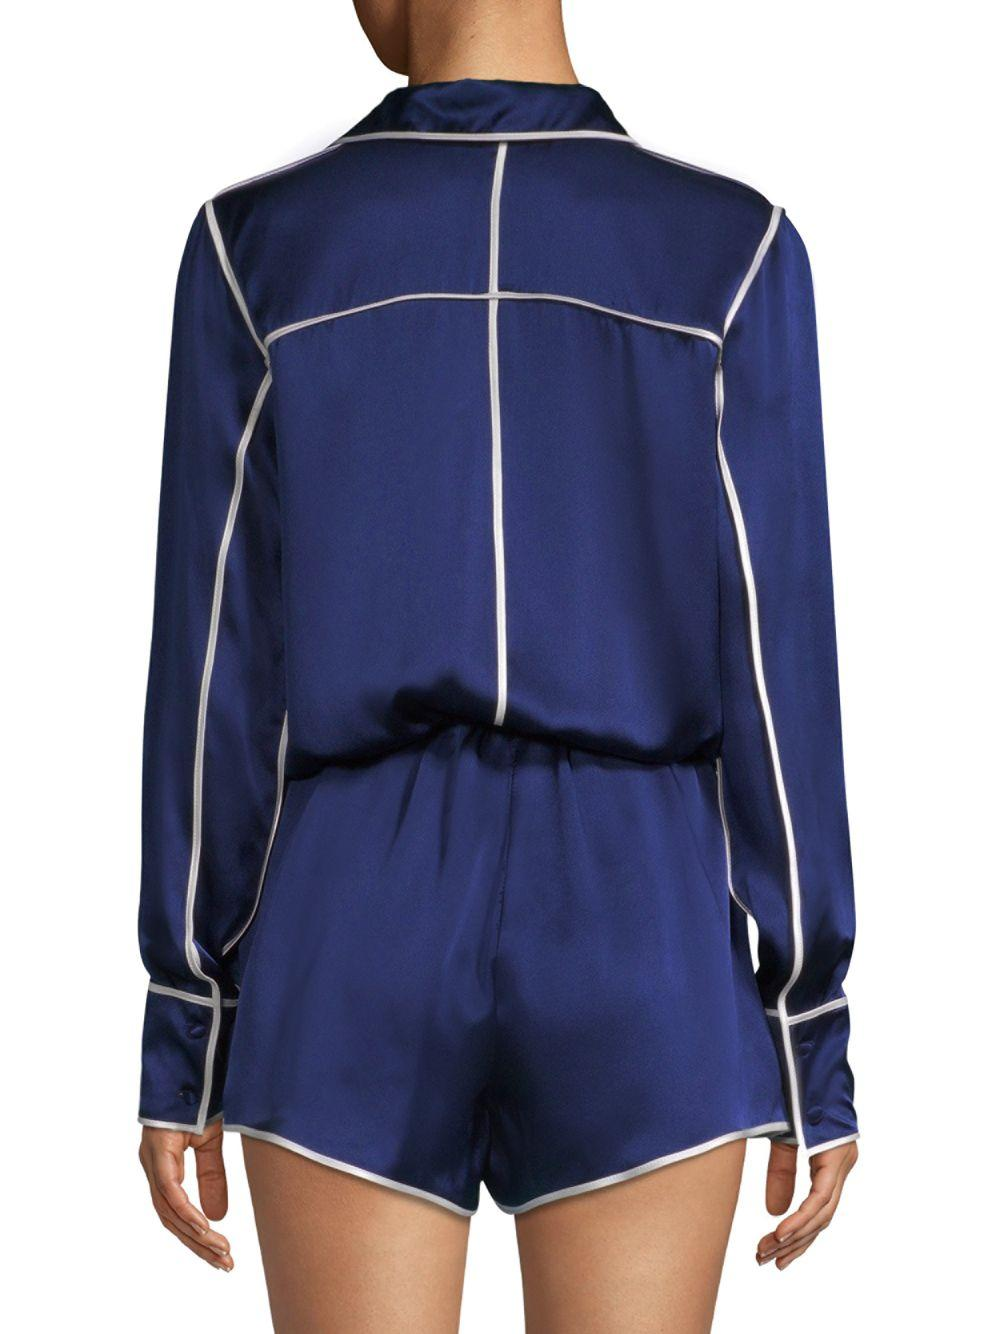 509b3fb742e3 Alexis Lareyne Twist Silk Pajama Romper in Blue - Save 20% - Lyst